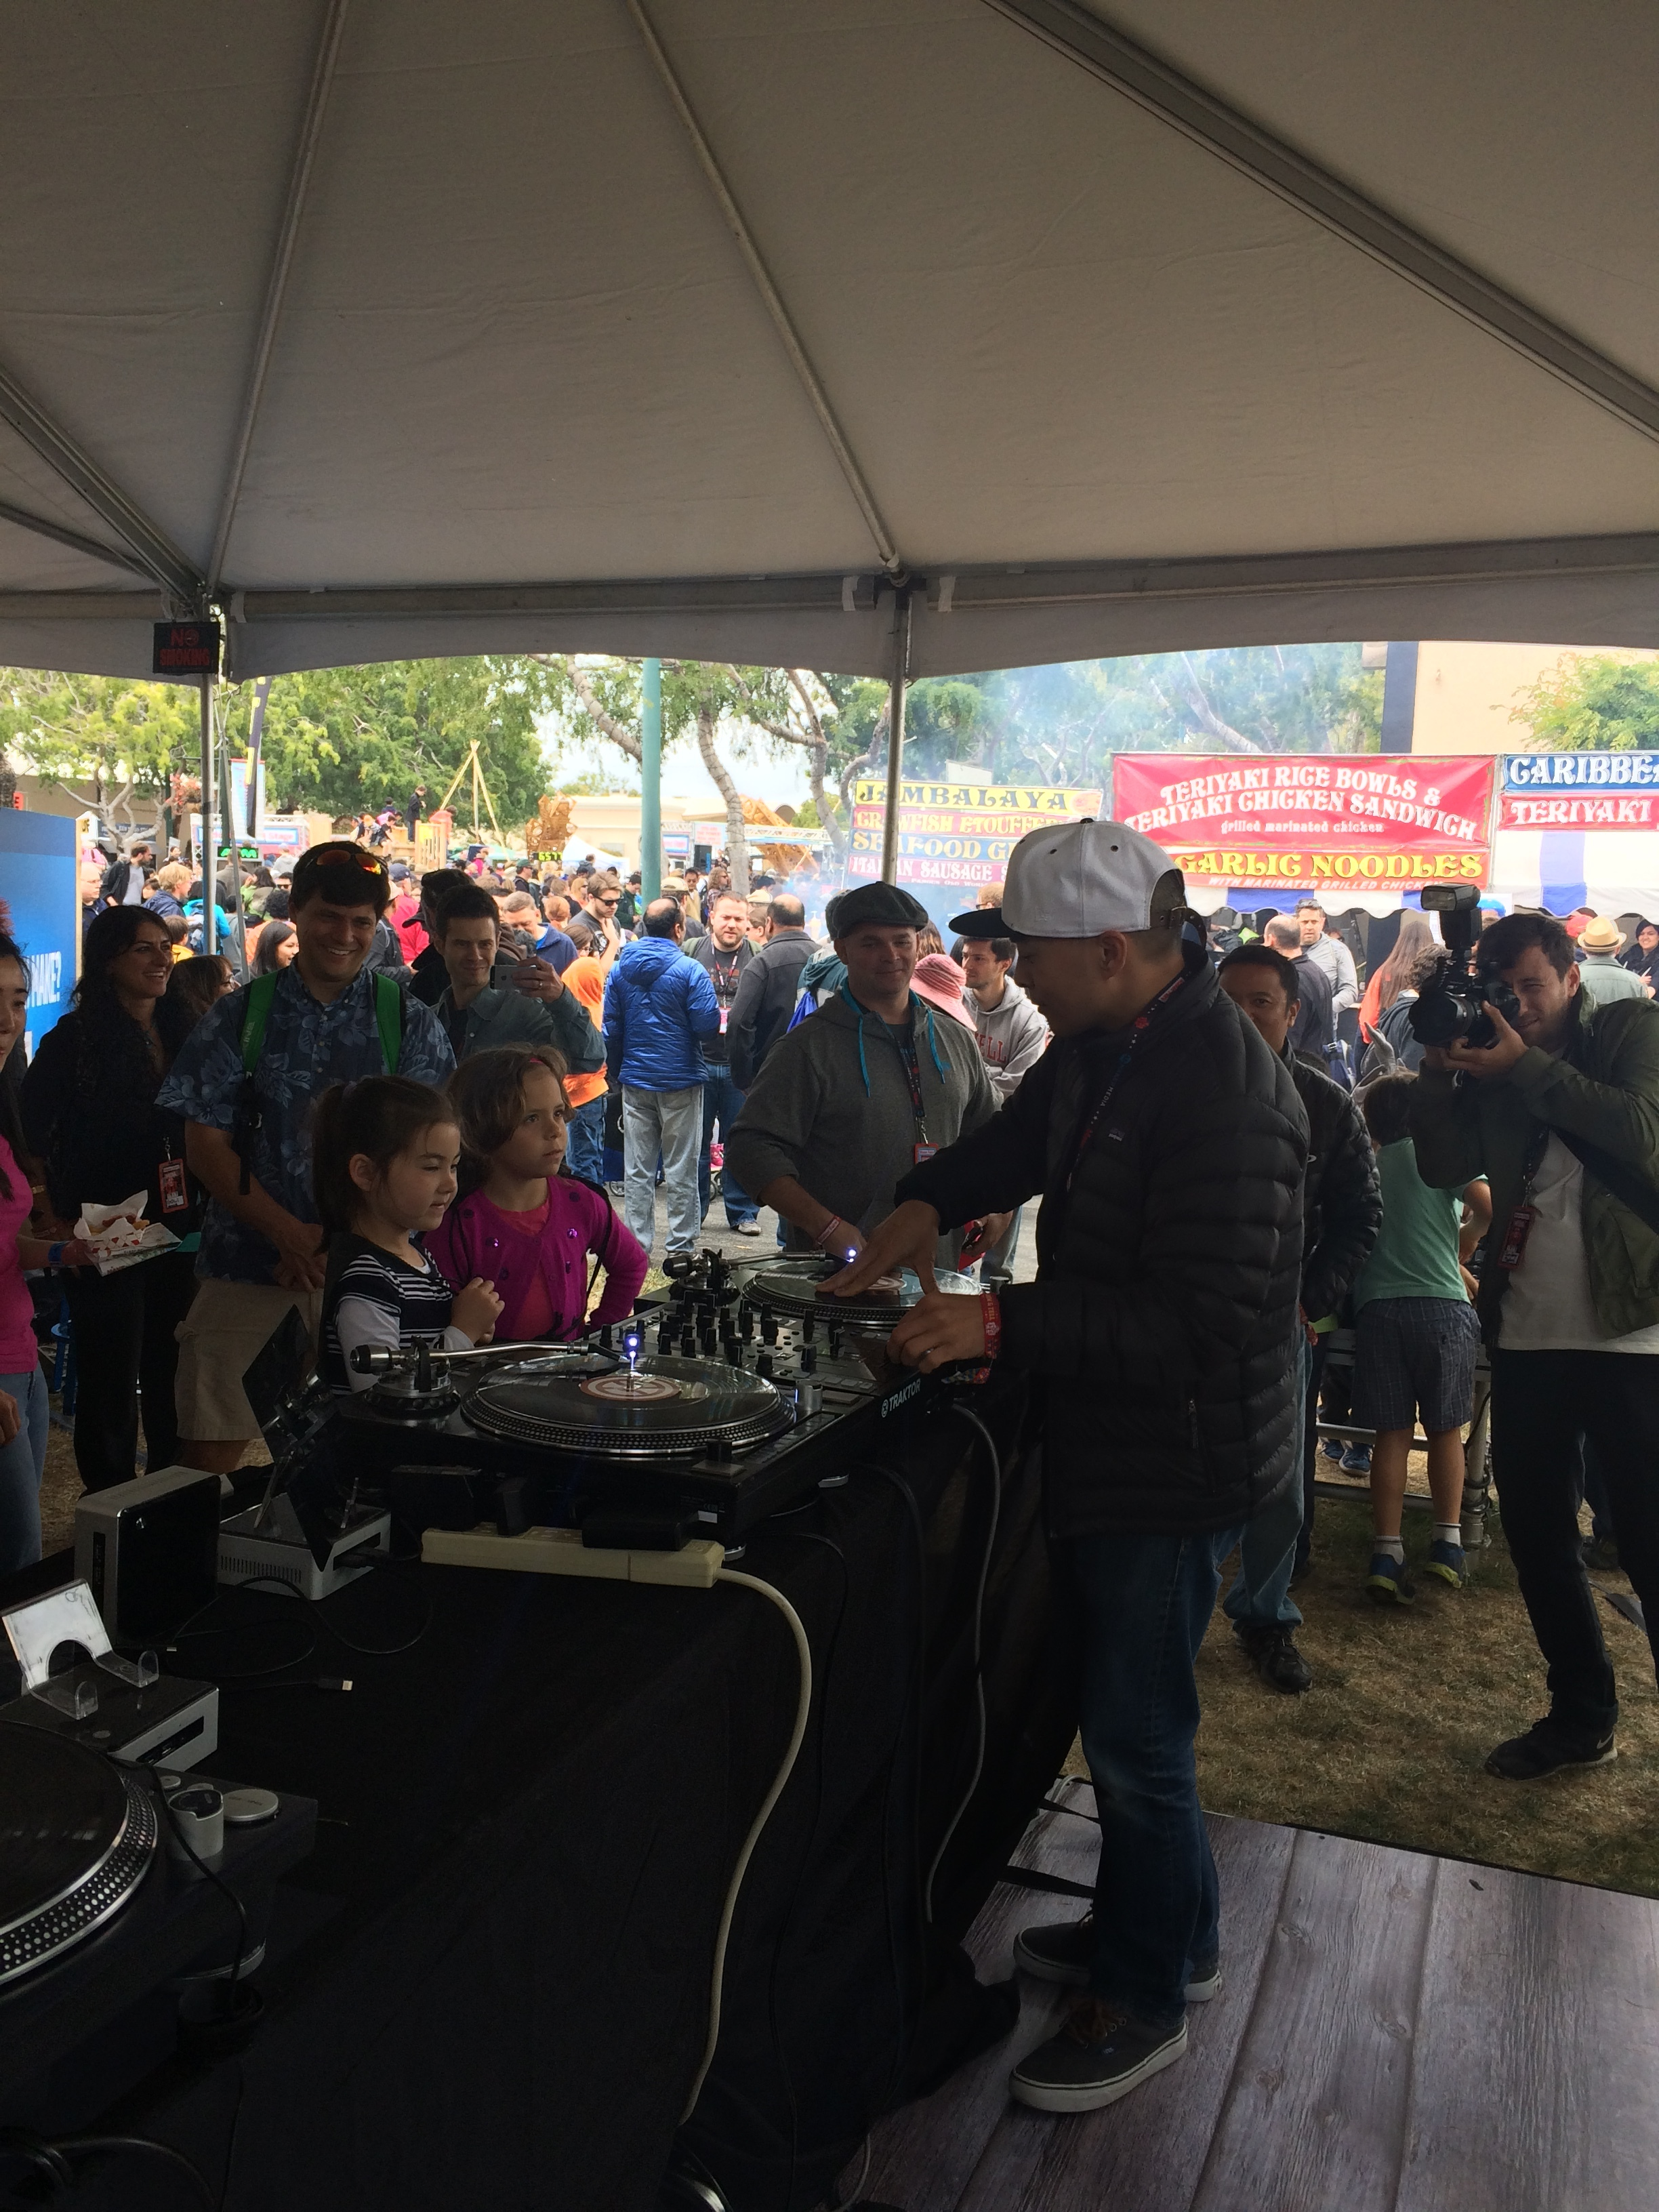 DJ QBert captivating the youth via turntable artistry at the Intel sponsered Makers Faire booth 2014.